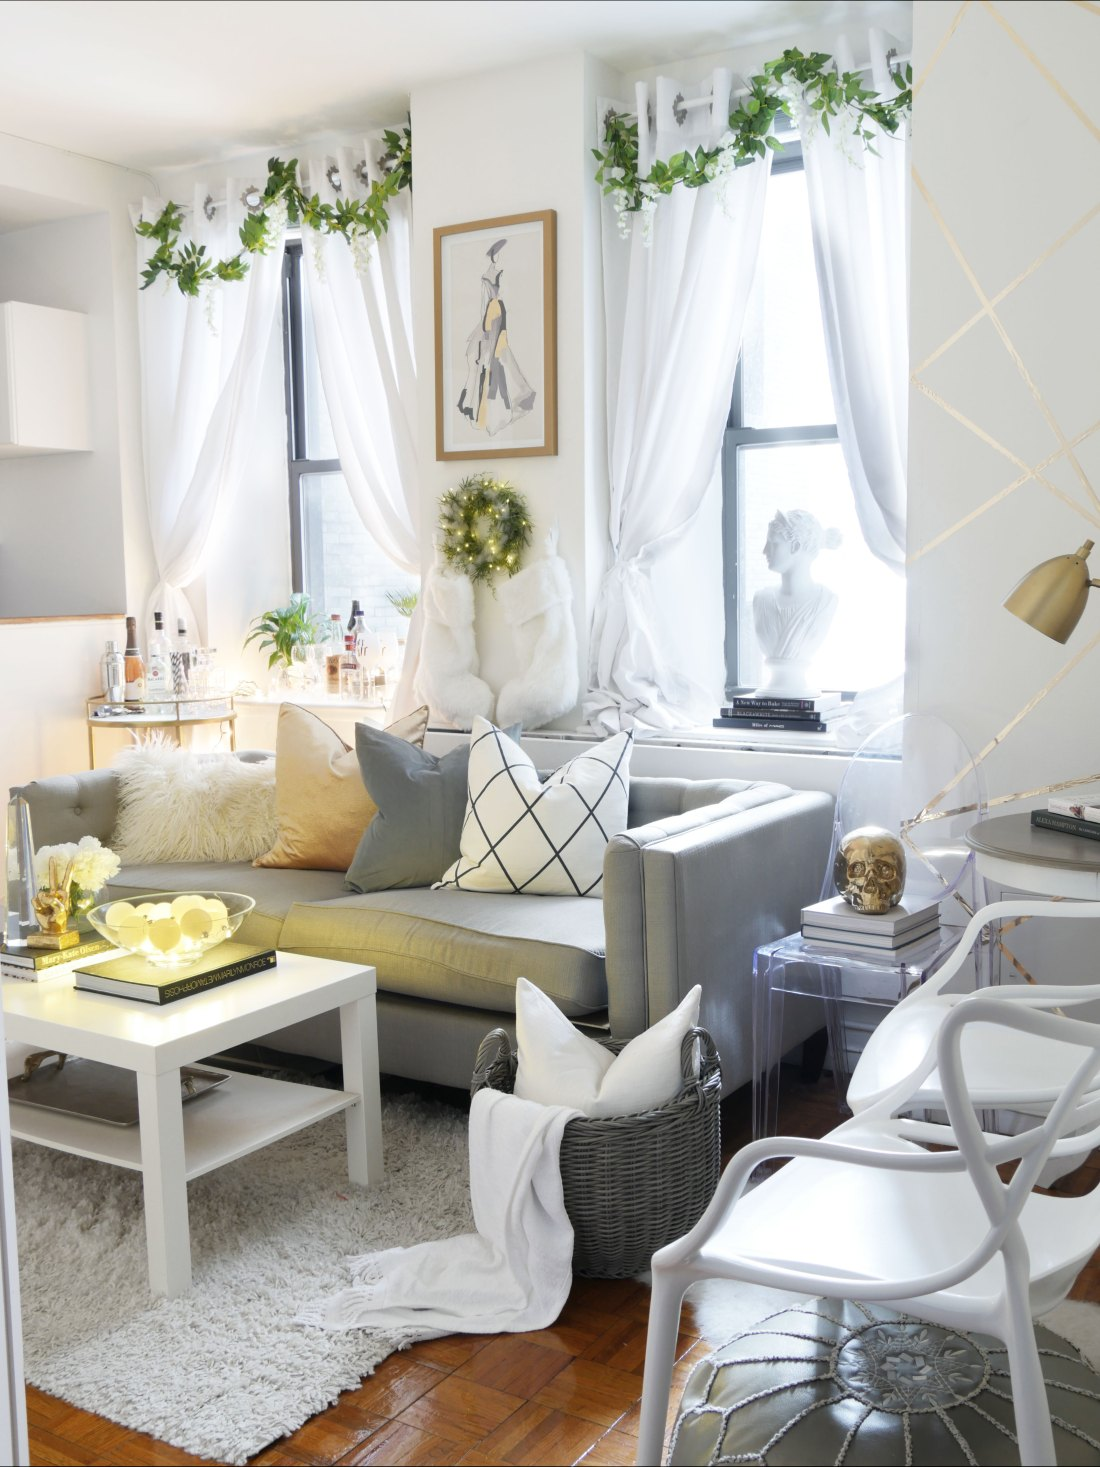 Decorating for the holidays in a small space might feel challenging, but rest assured, its easy and budget friendly! #holidaydecorating #holidaydecor #holidaydecordiy